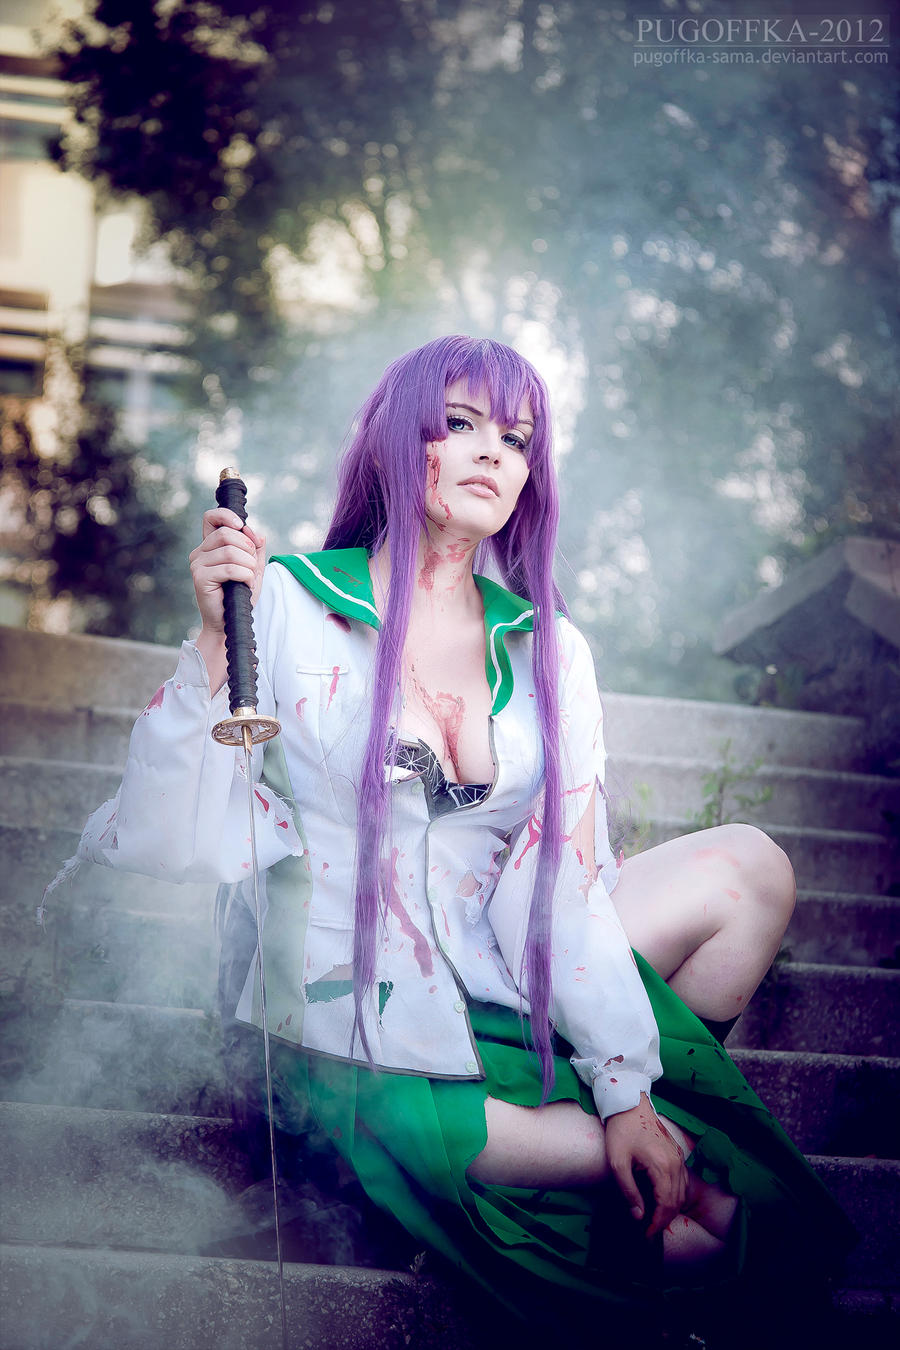 Highschool of the dead by Pugoffka-sama